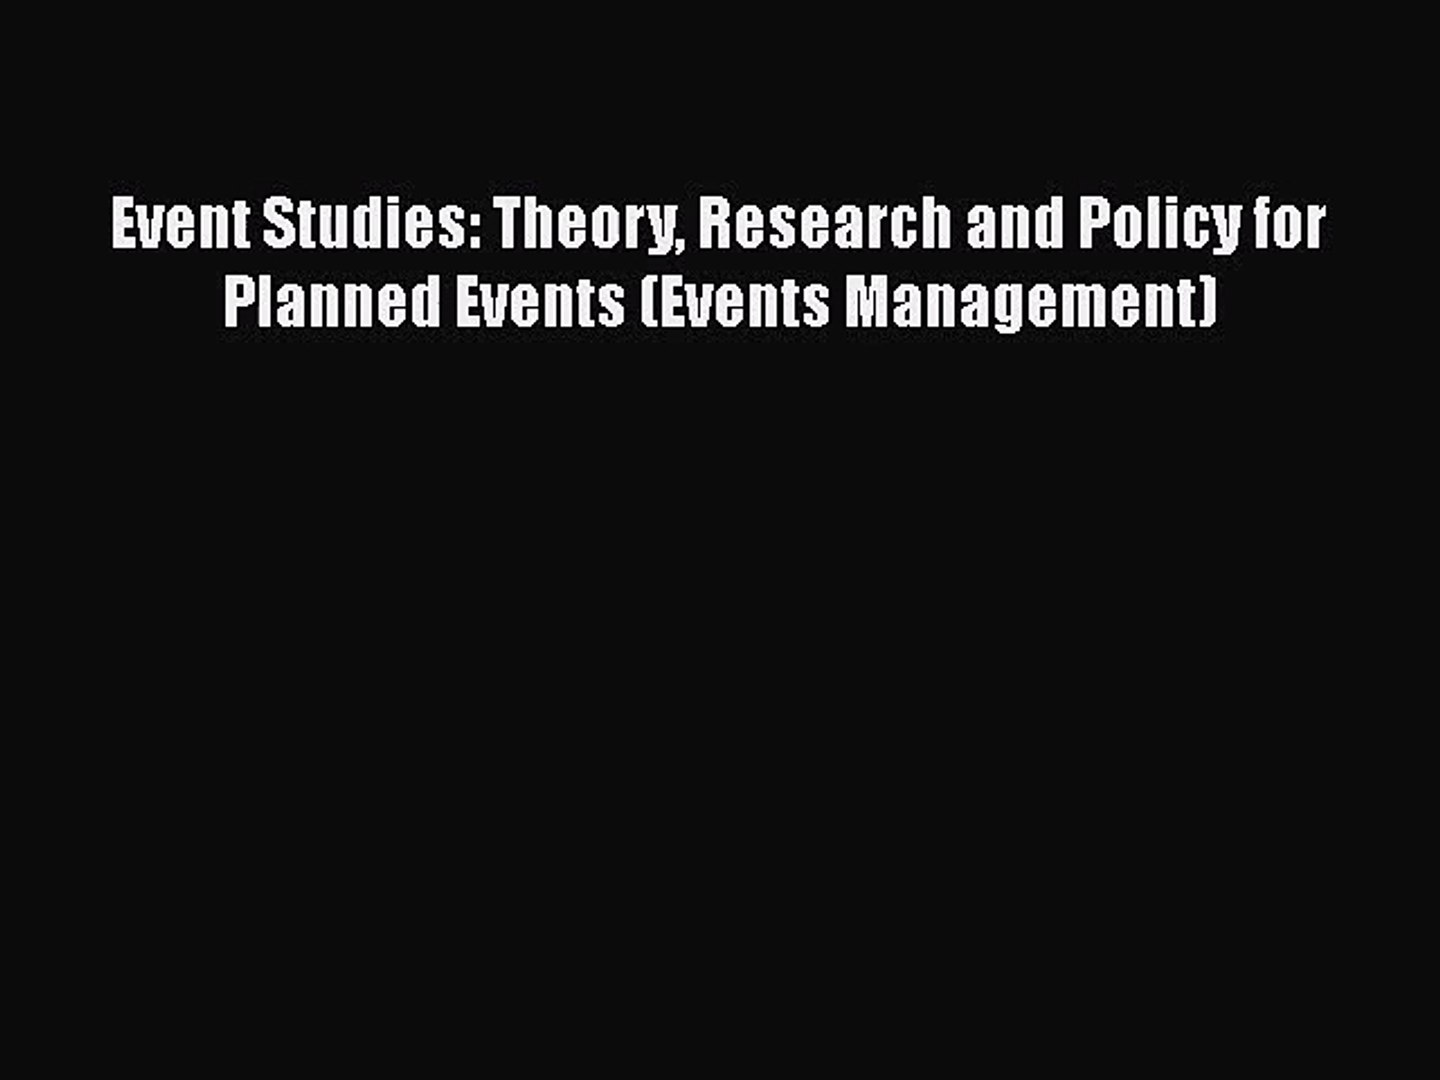 Event Studies: Theory Research and Policy for Planned Events (Events Management) [Read] Full